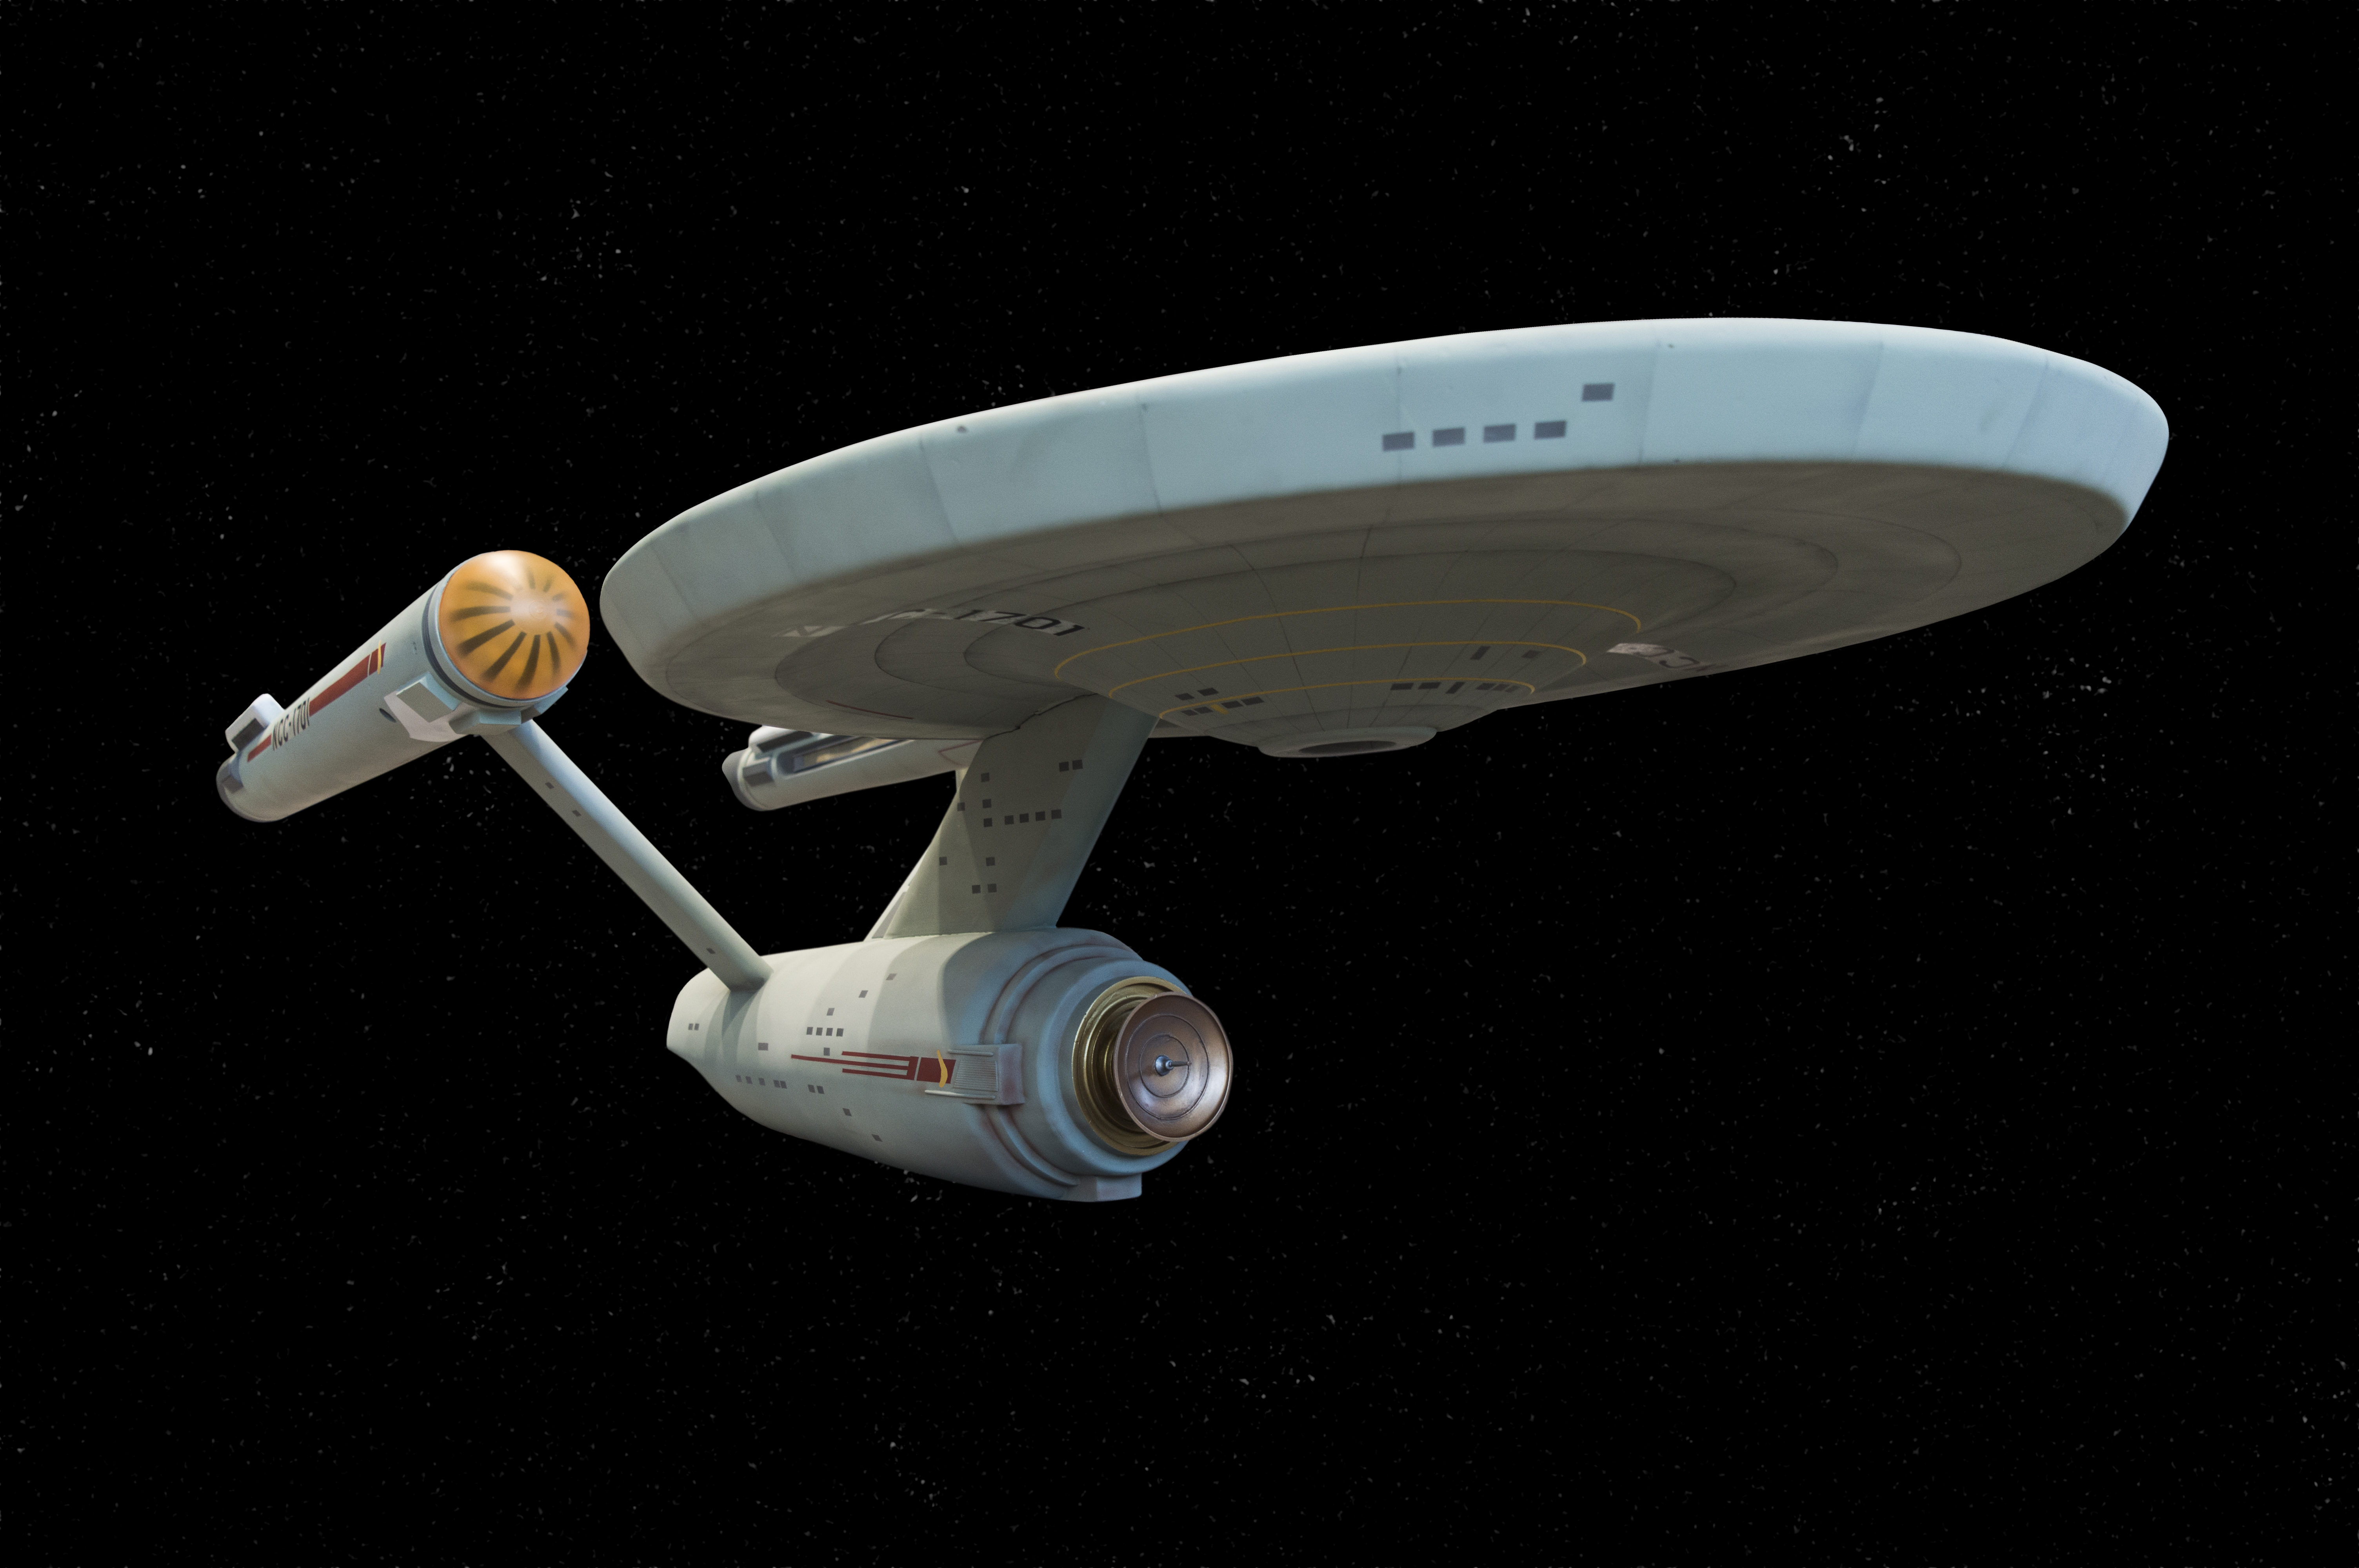 001_Enterprise with my edit